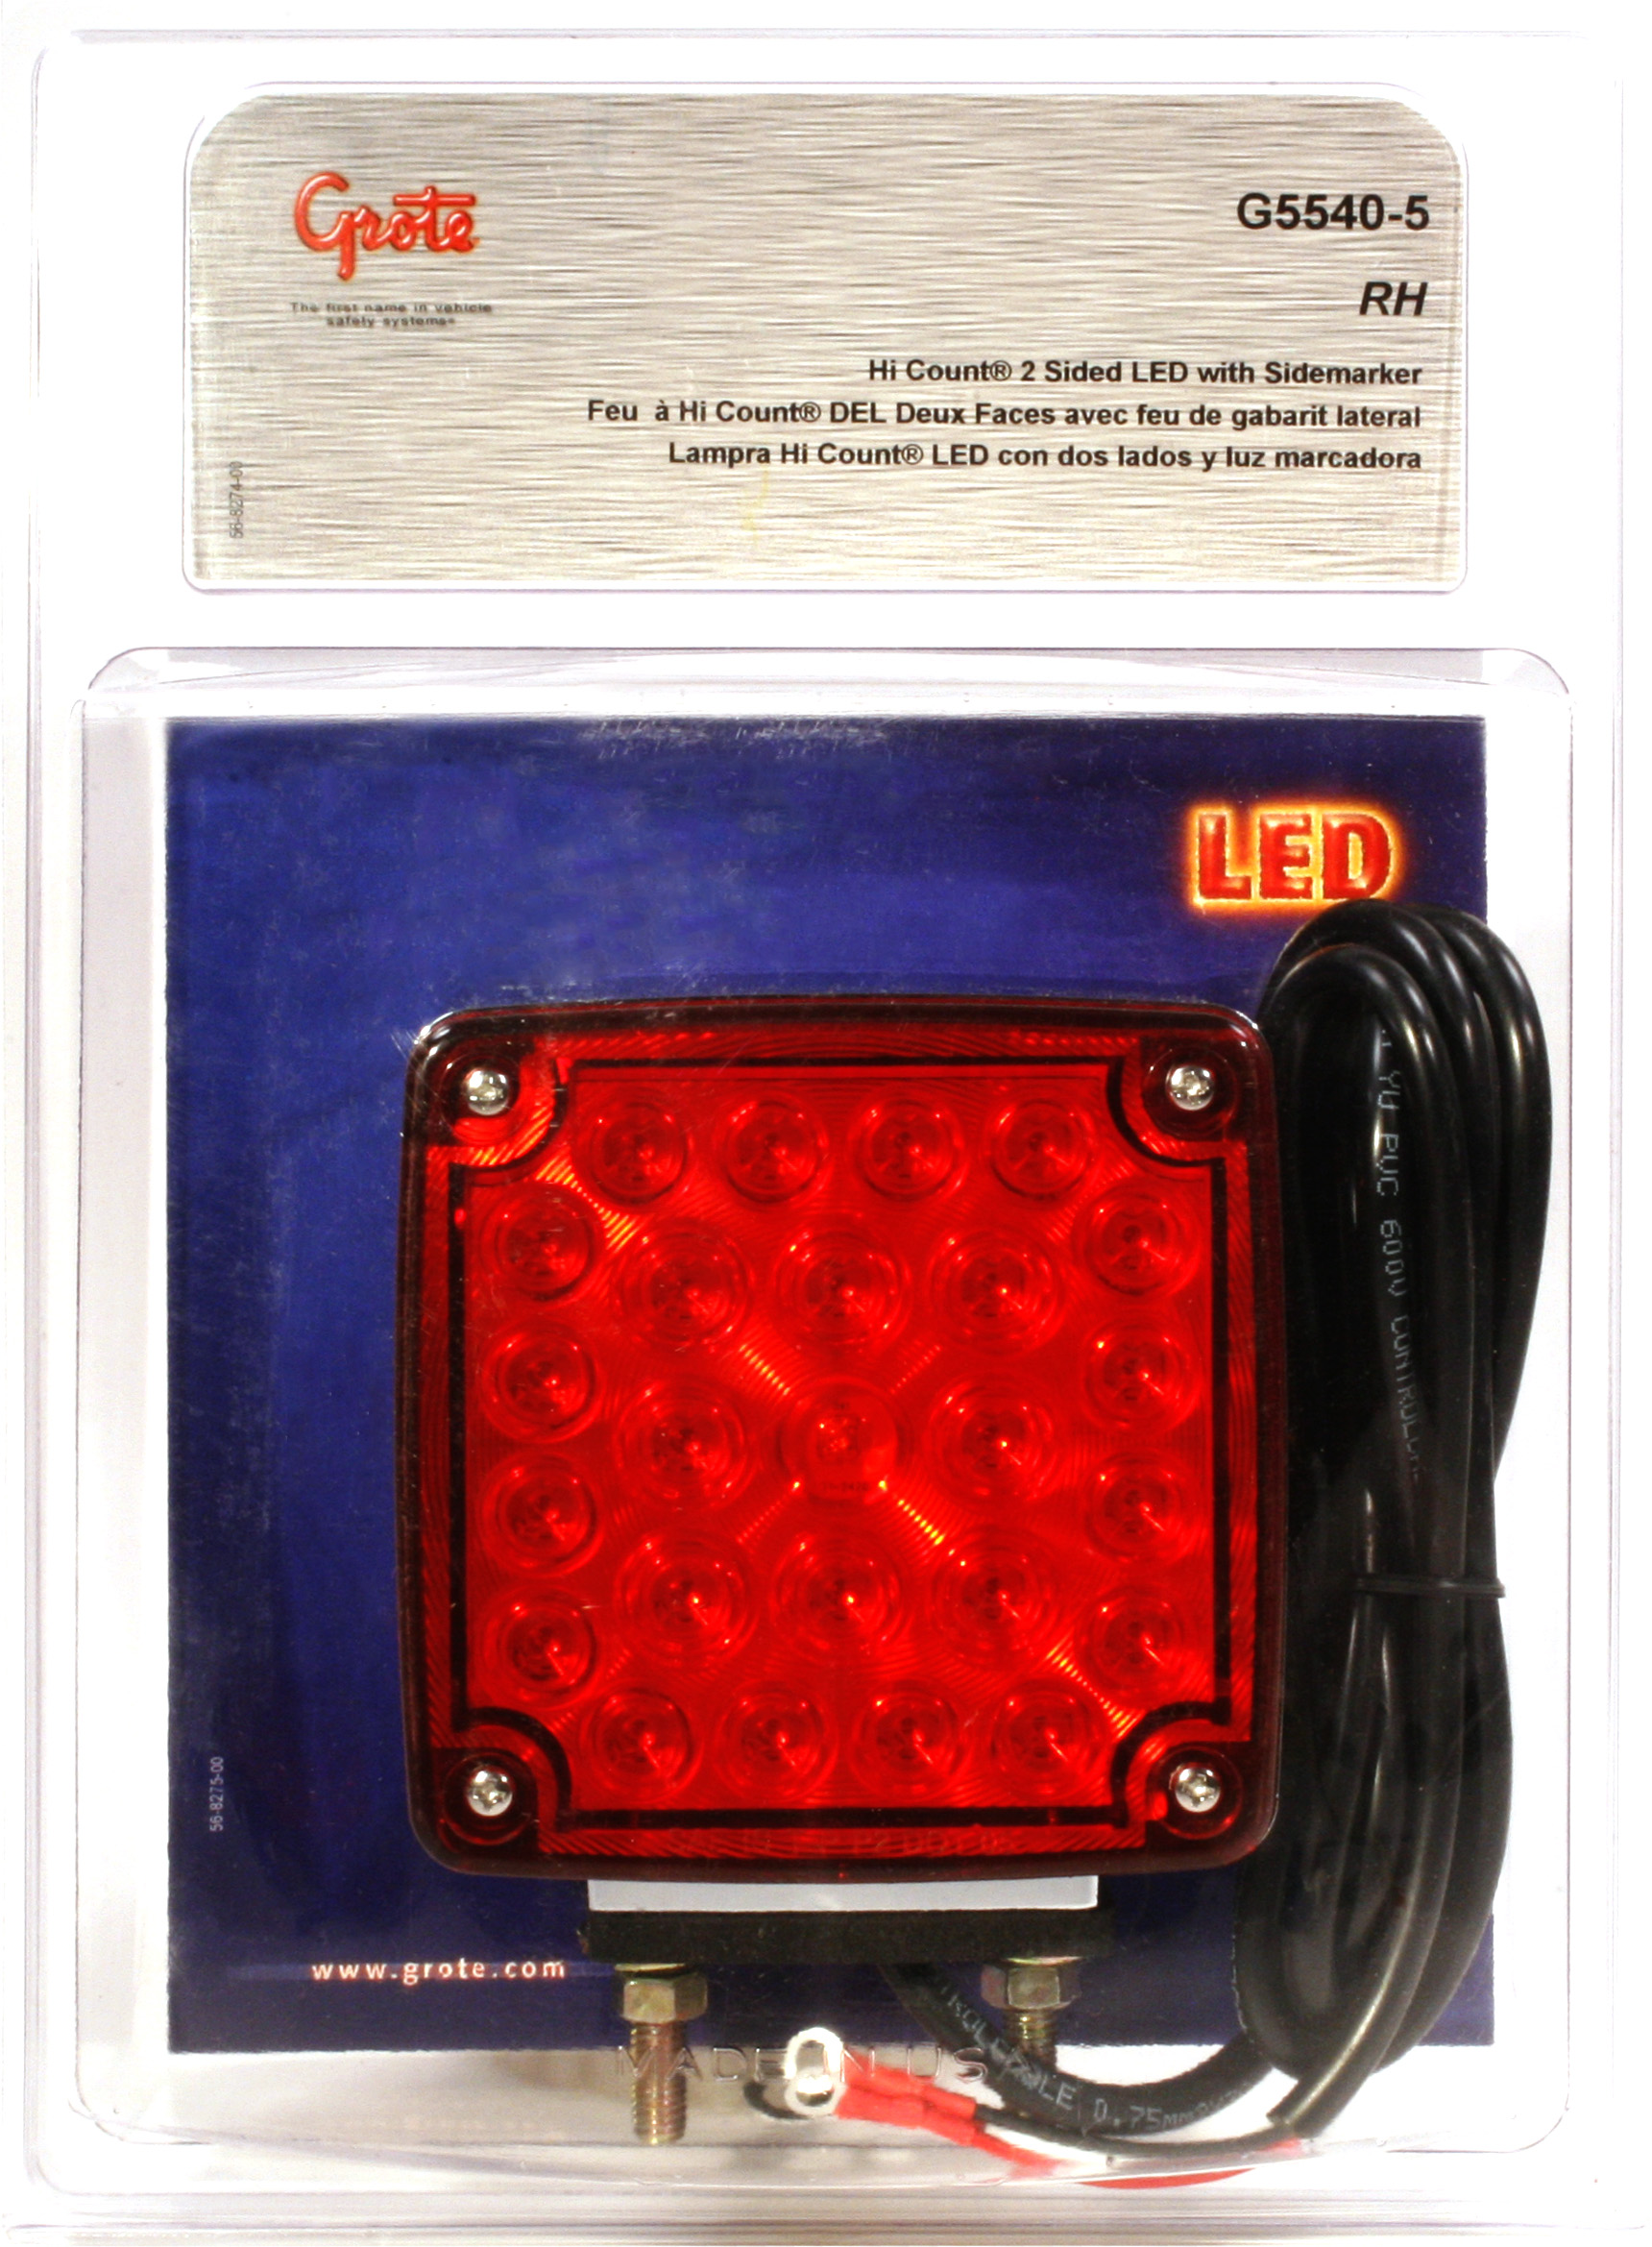 G5540-5 – Hi Count® Double-Face LED Stop Tail Turn Light w/ Side Marker, RH, Red/Yellow, Retail Pack